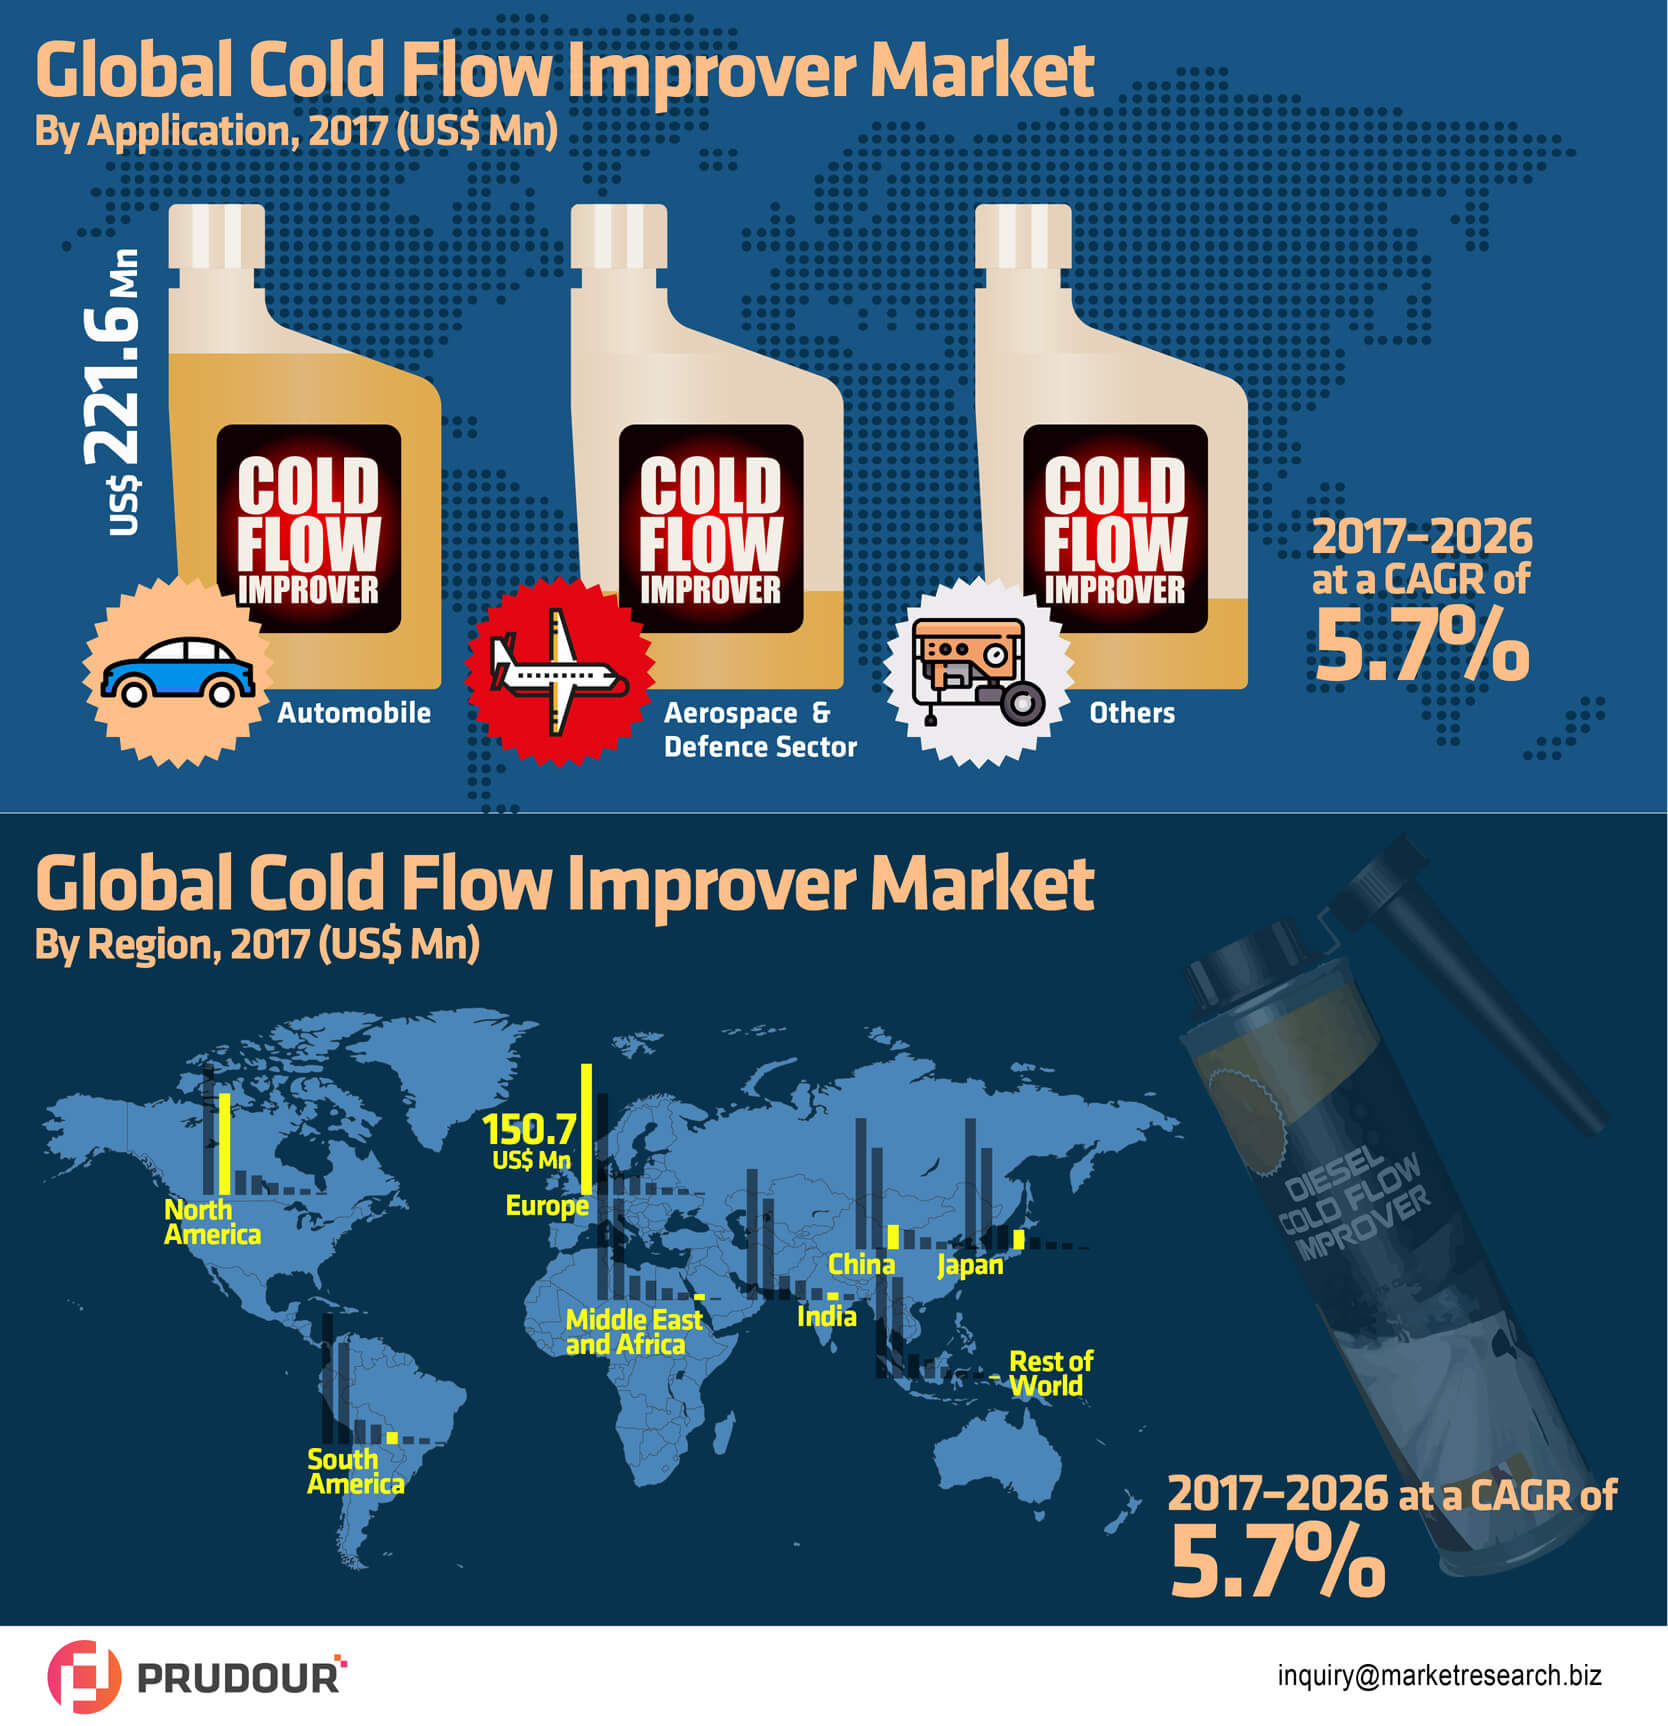 global-cold-flow-improver-market-infographic-plaza